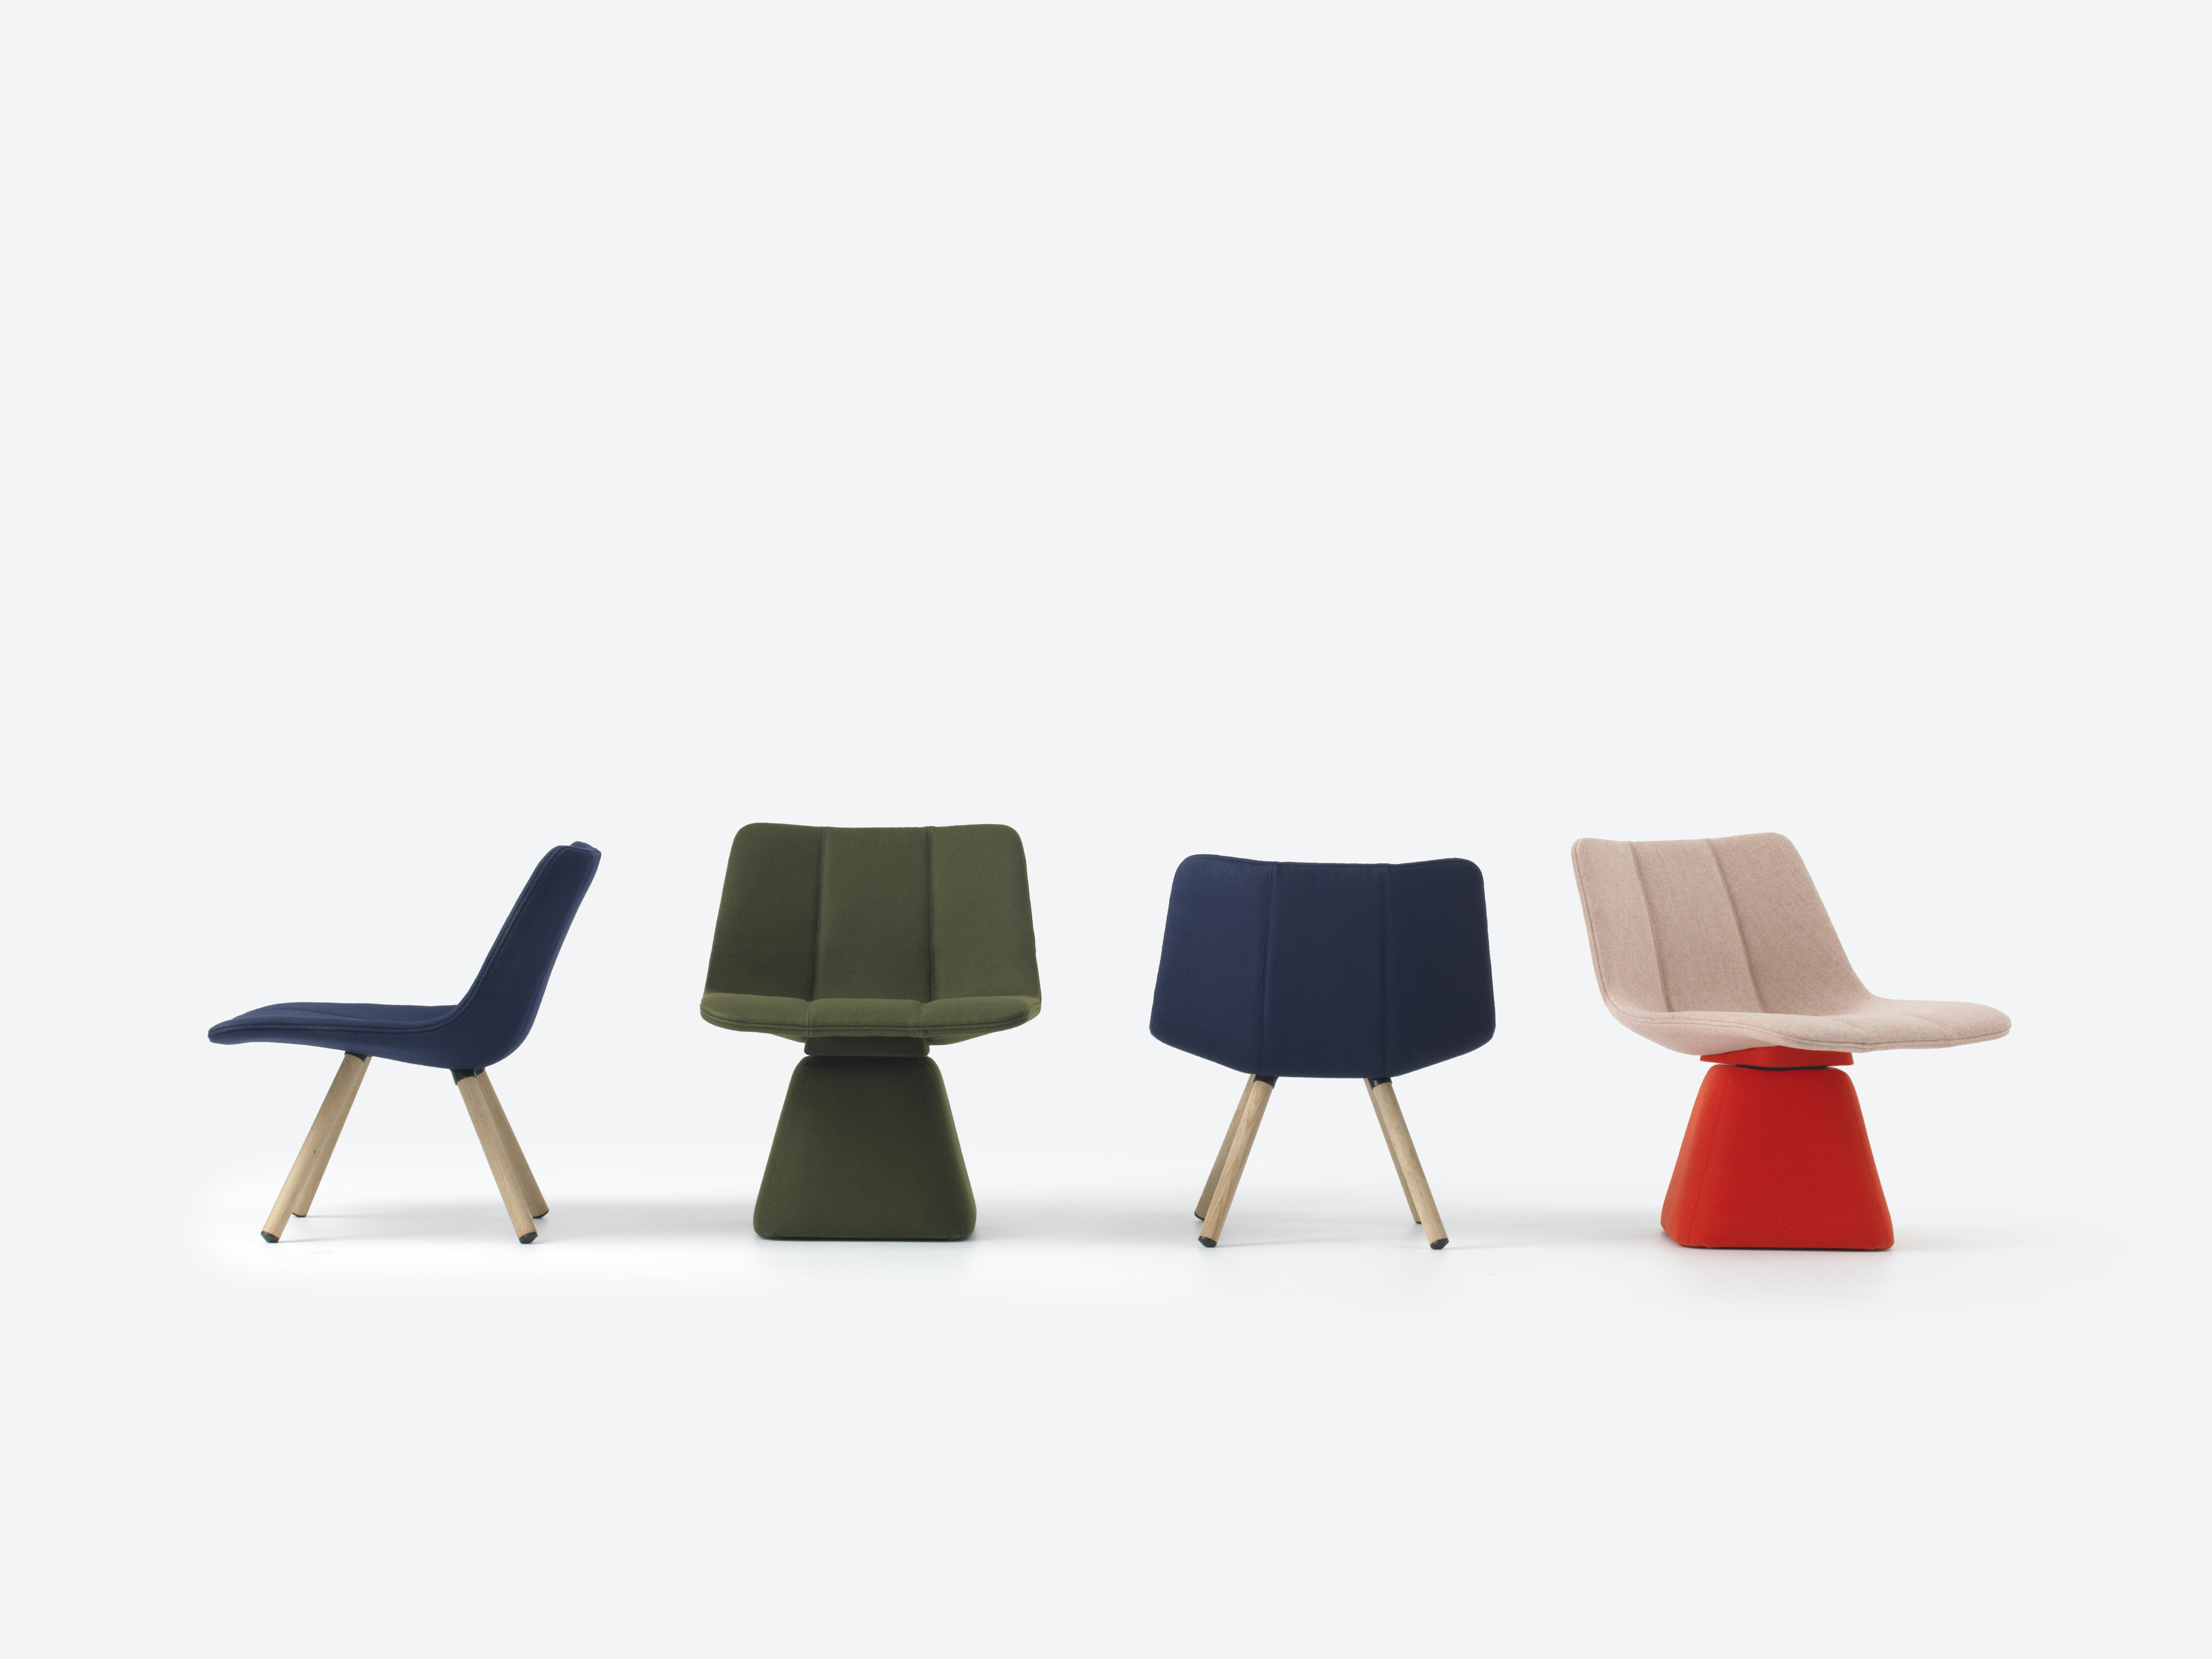 Resident-furniture-4-leg-volley-chair-group-haute-living